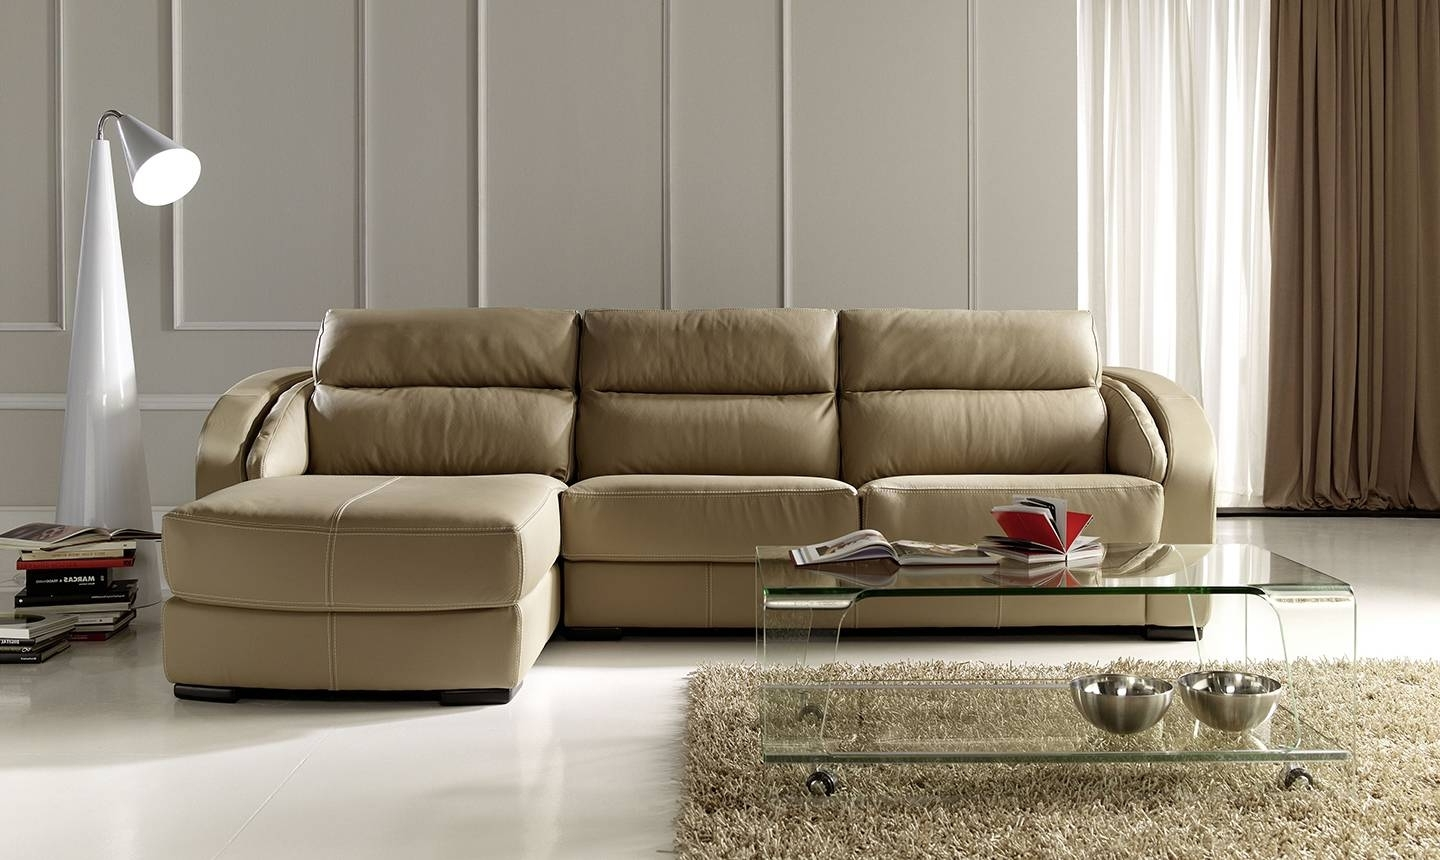 Virginia Beach Sectional Sofas Within Best And Newest Modern Style Apartment Size Leather Sectional Sofa And Exquisite (View 20 of 20)